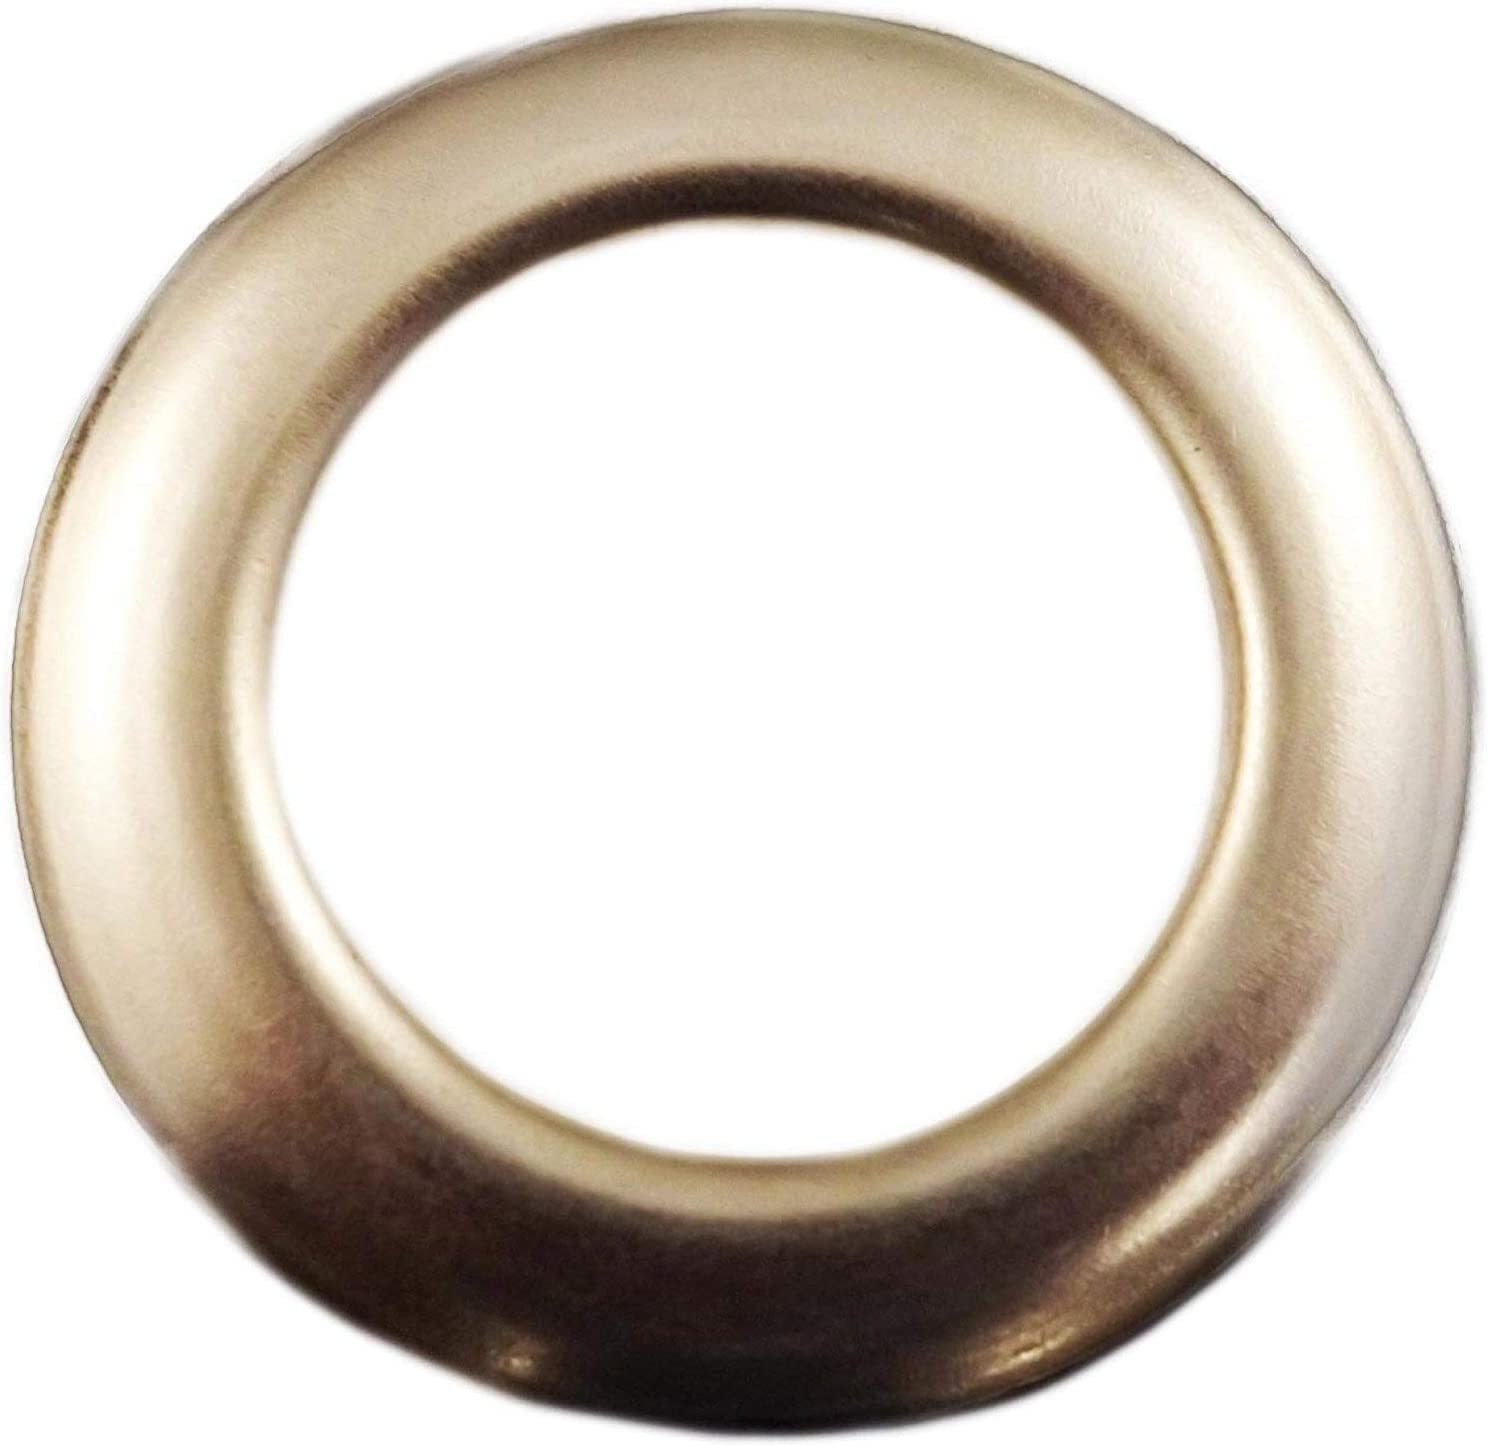 supreme Large Nickel ! Super beauty product restock quality top! Metal Curtain Drapery 9 Supplies Hardware #12-1 16